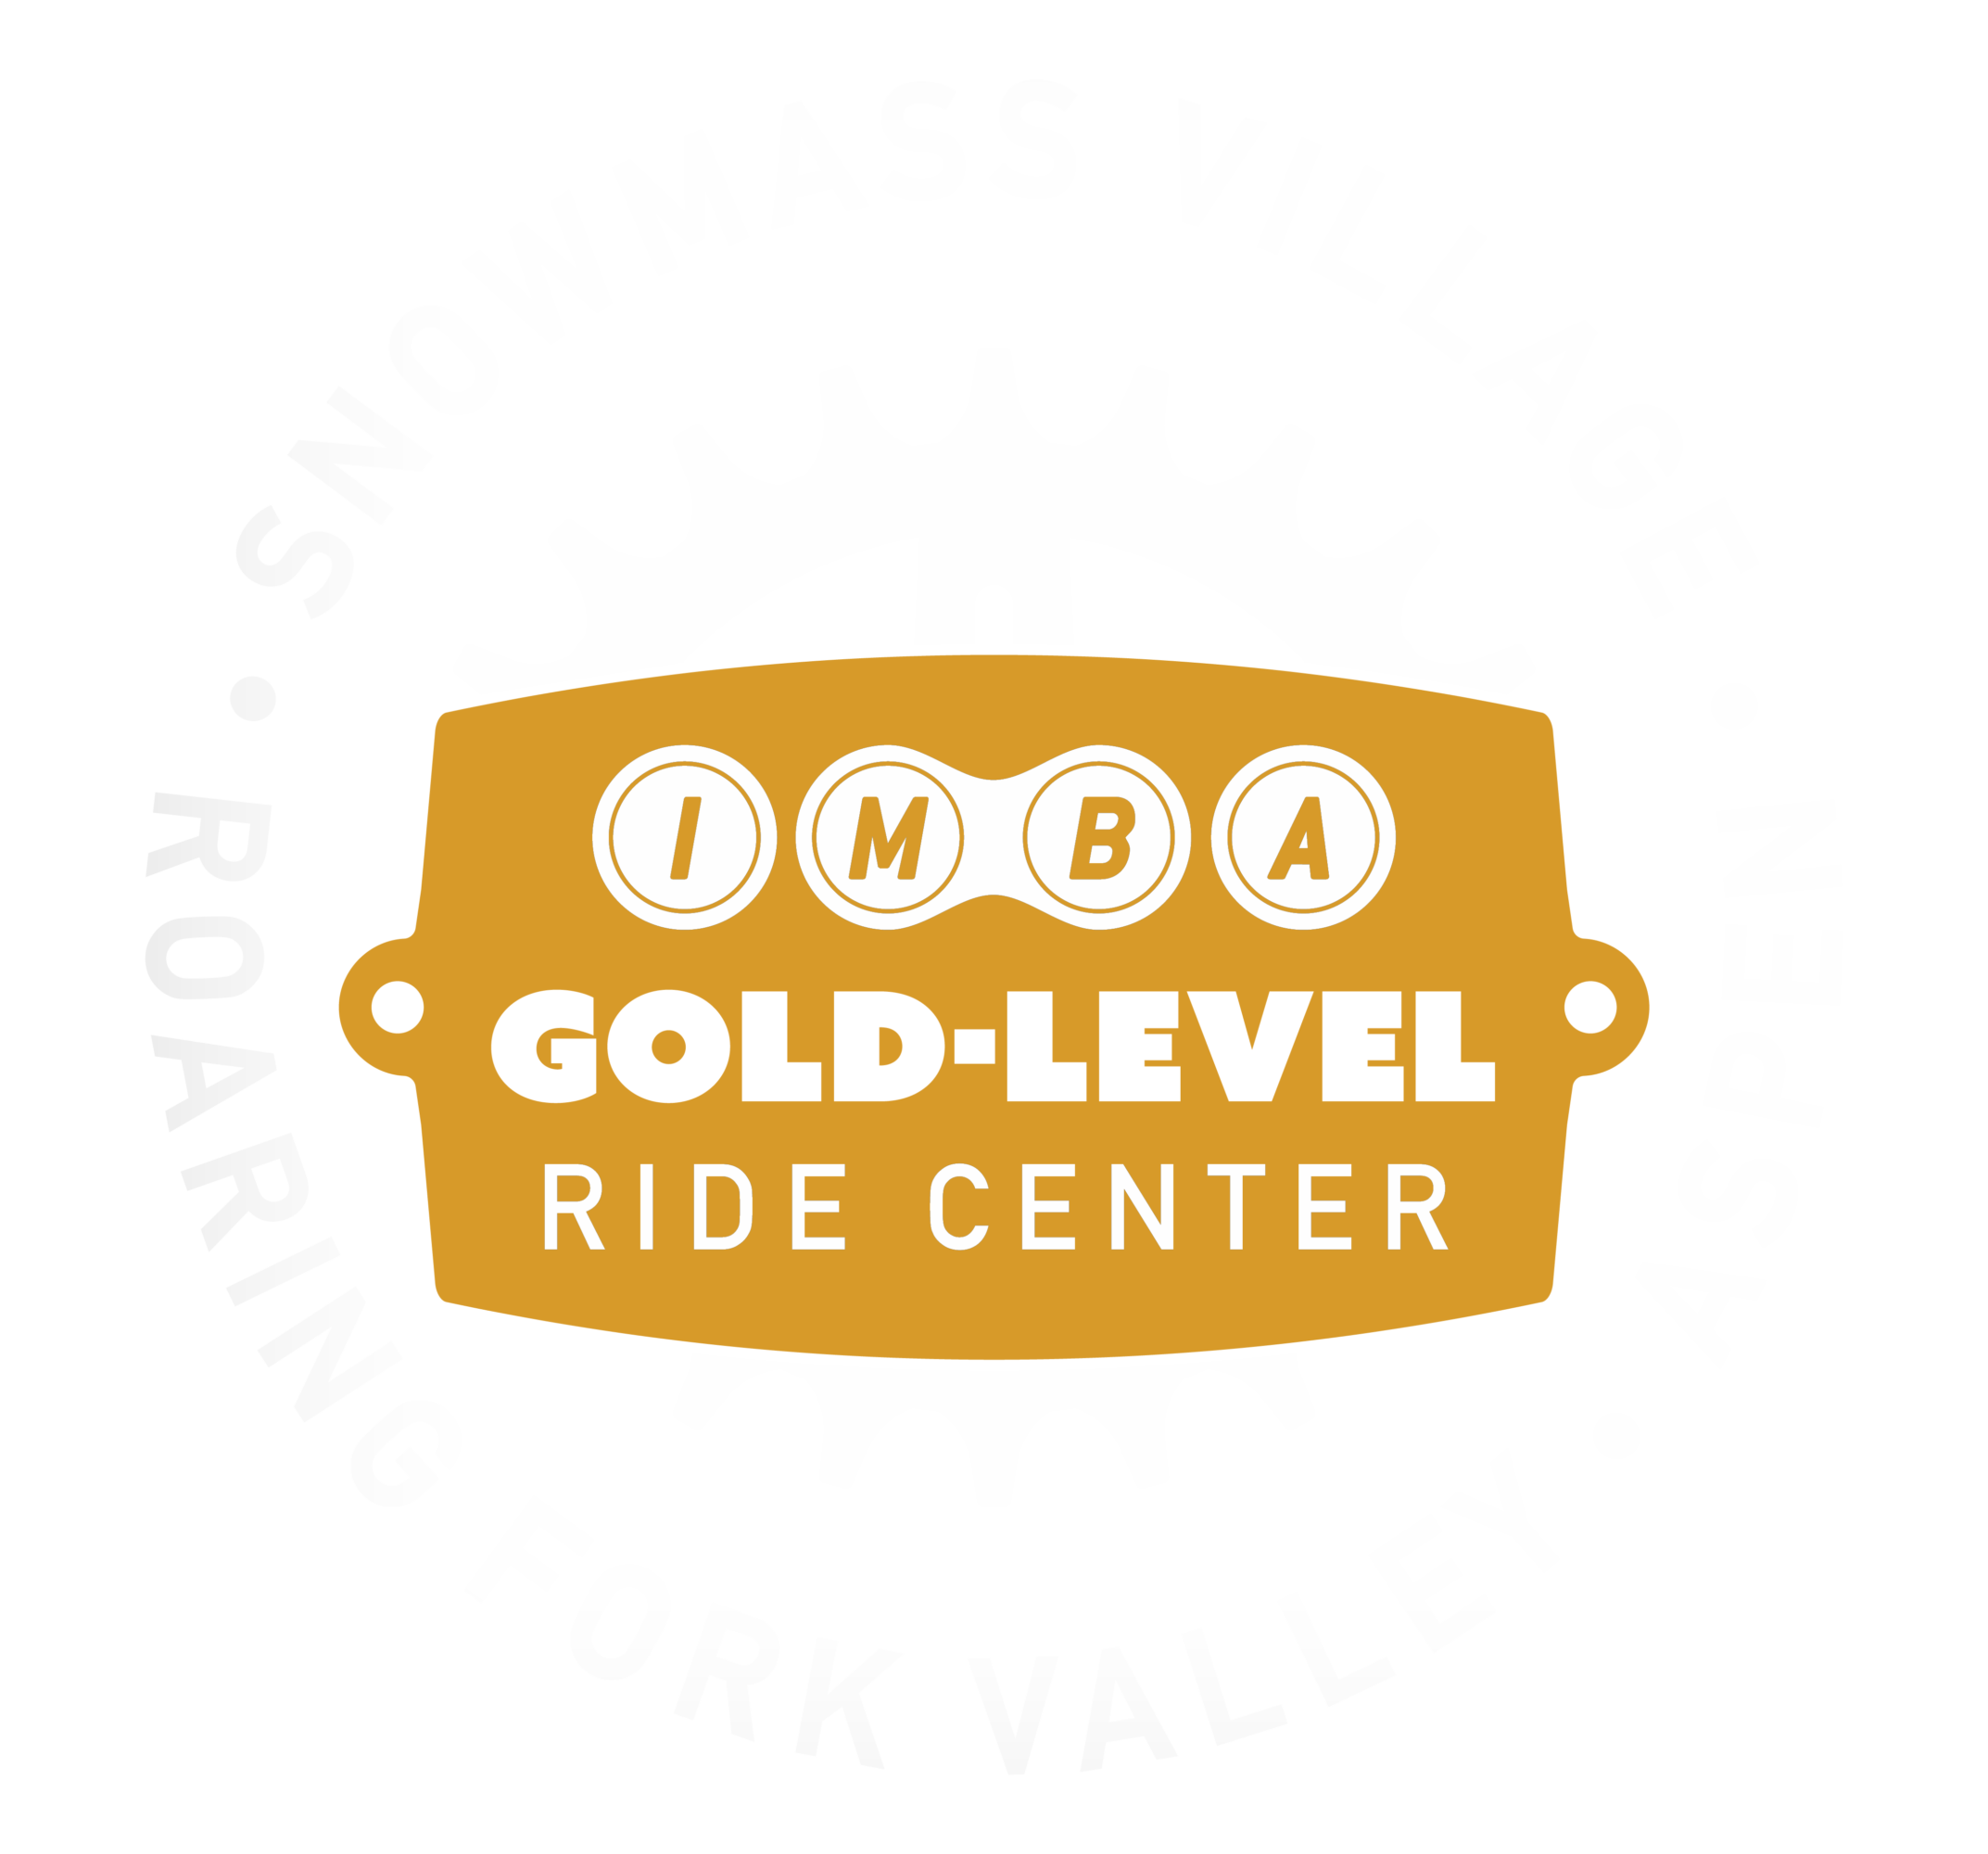 IMBA Gold-Level Ride Center Certification